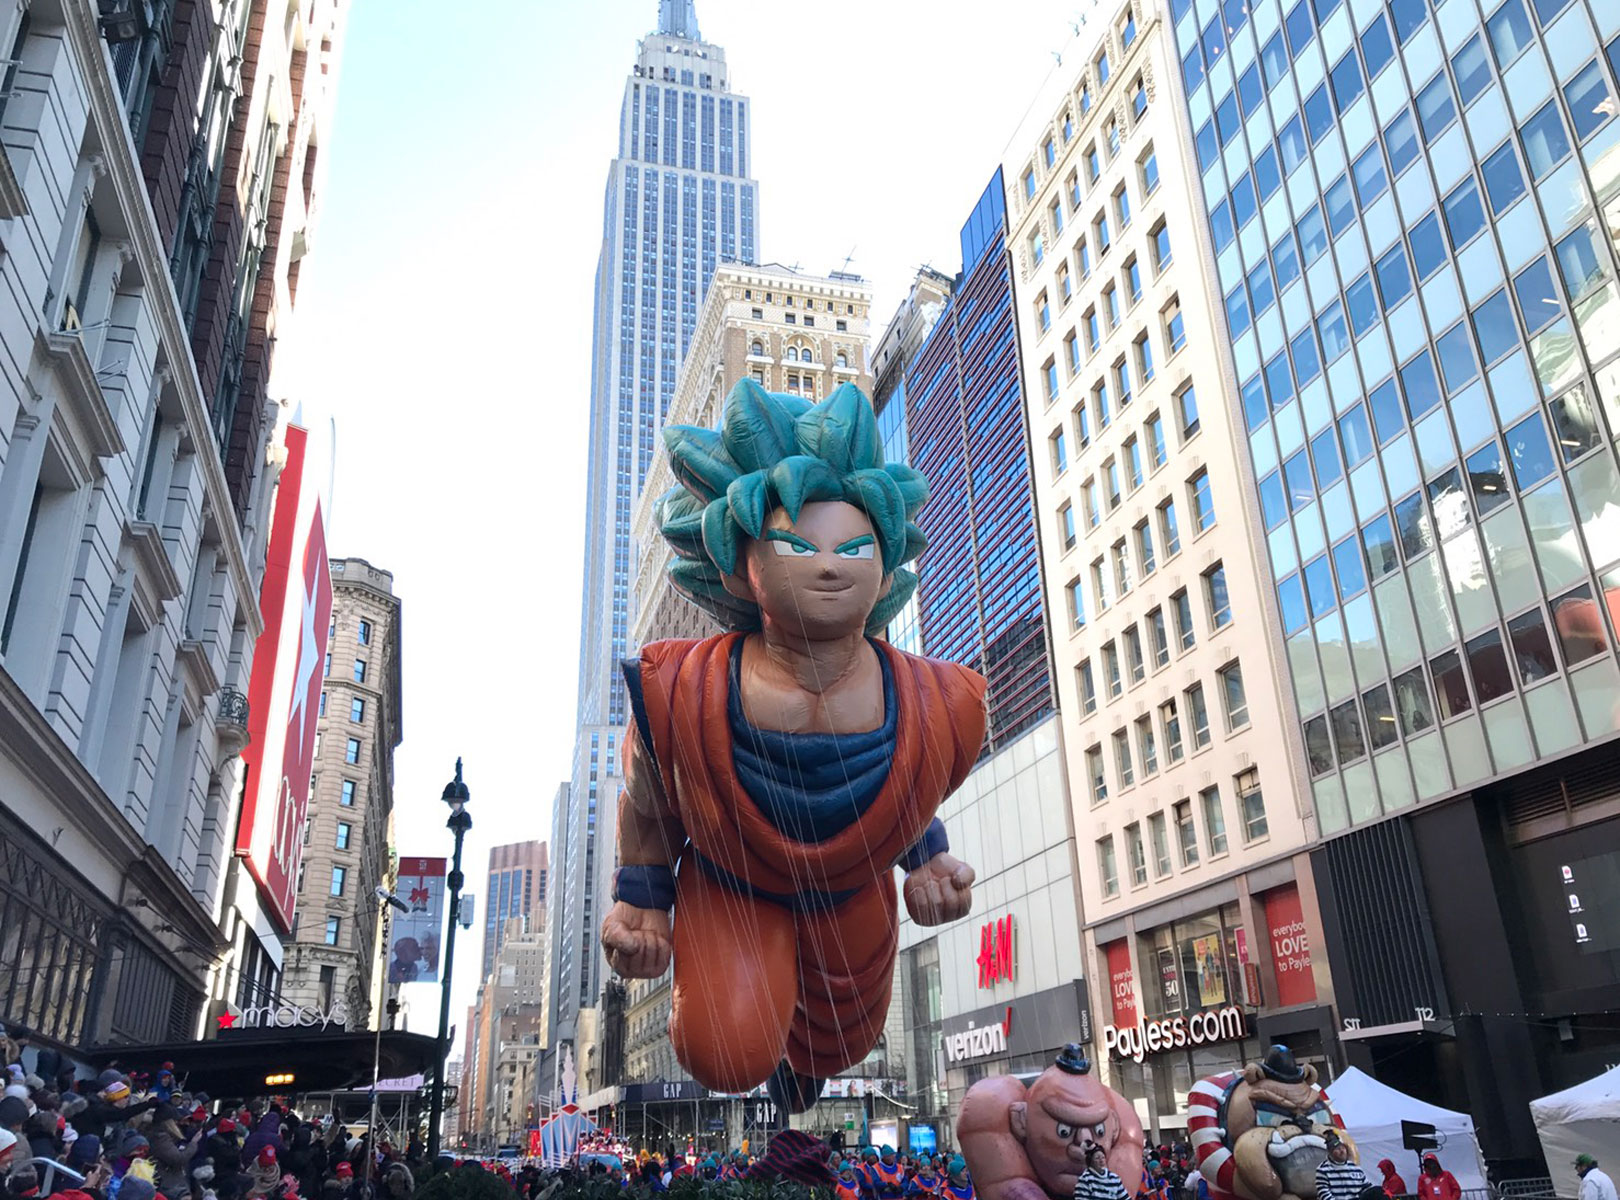 GOKU'S BACK TO SOAR IN THE 2019 MACY'S THANKSGIVING DAY PARADE!